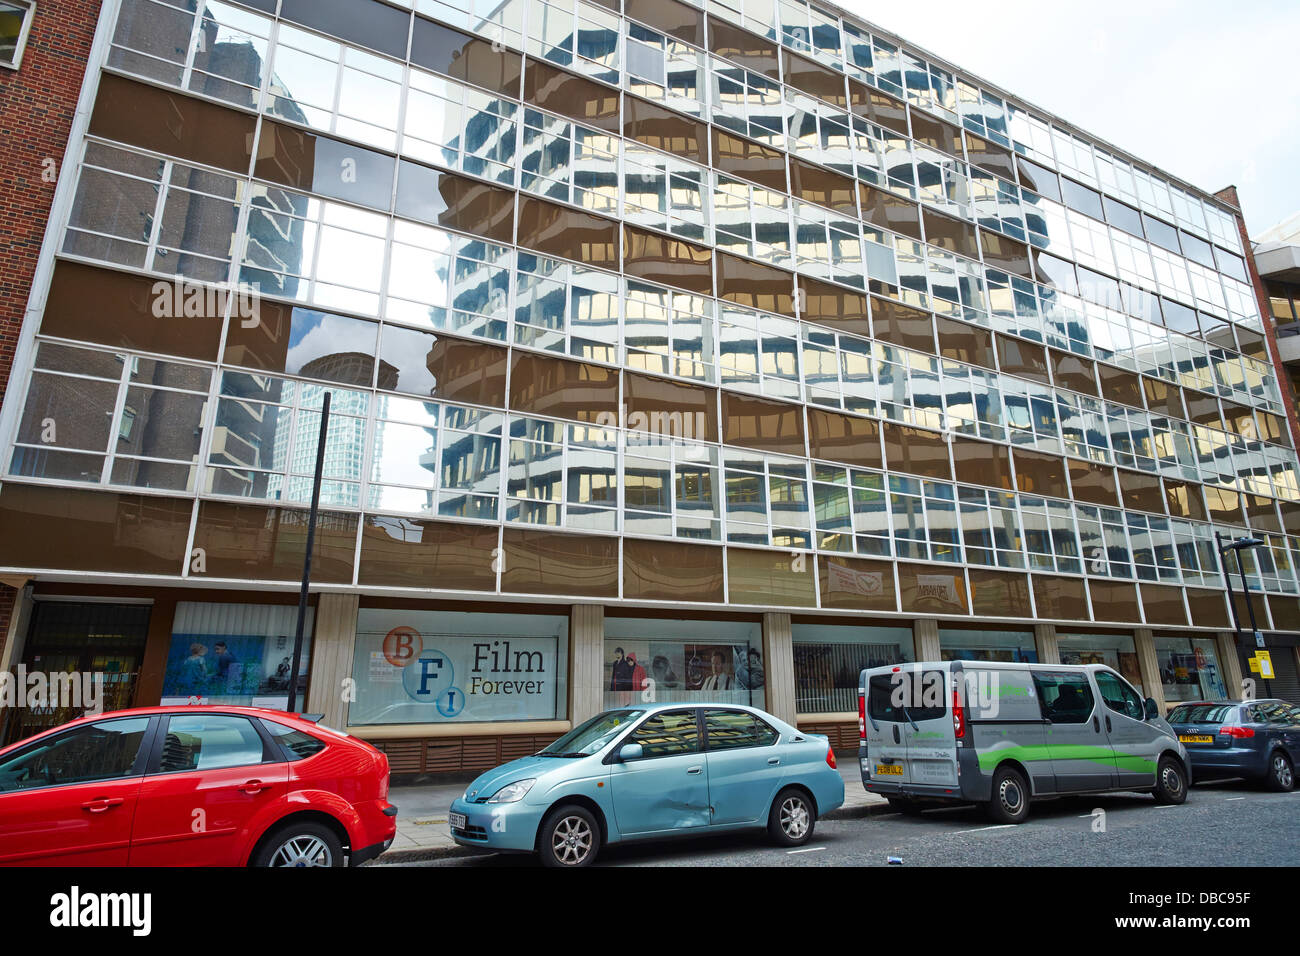 BFI British Film Institute Offices Stephen Street London UK - Stock Image